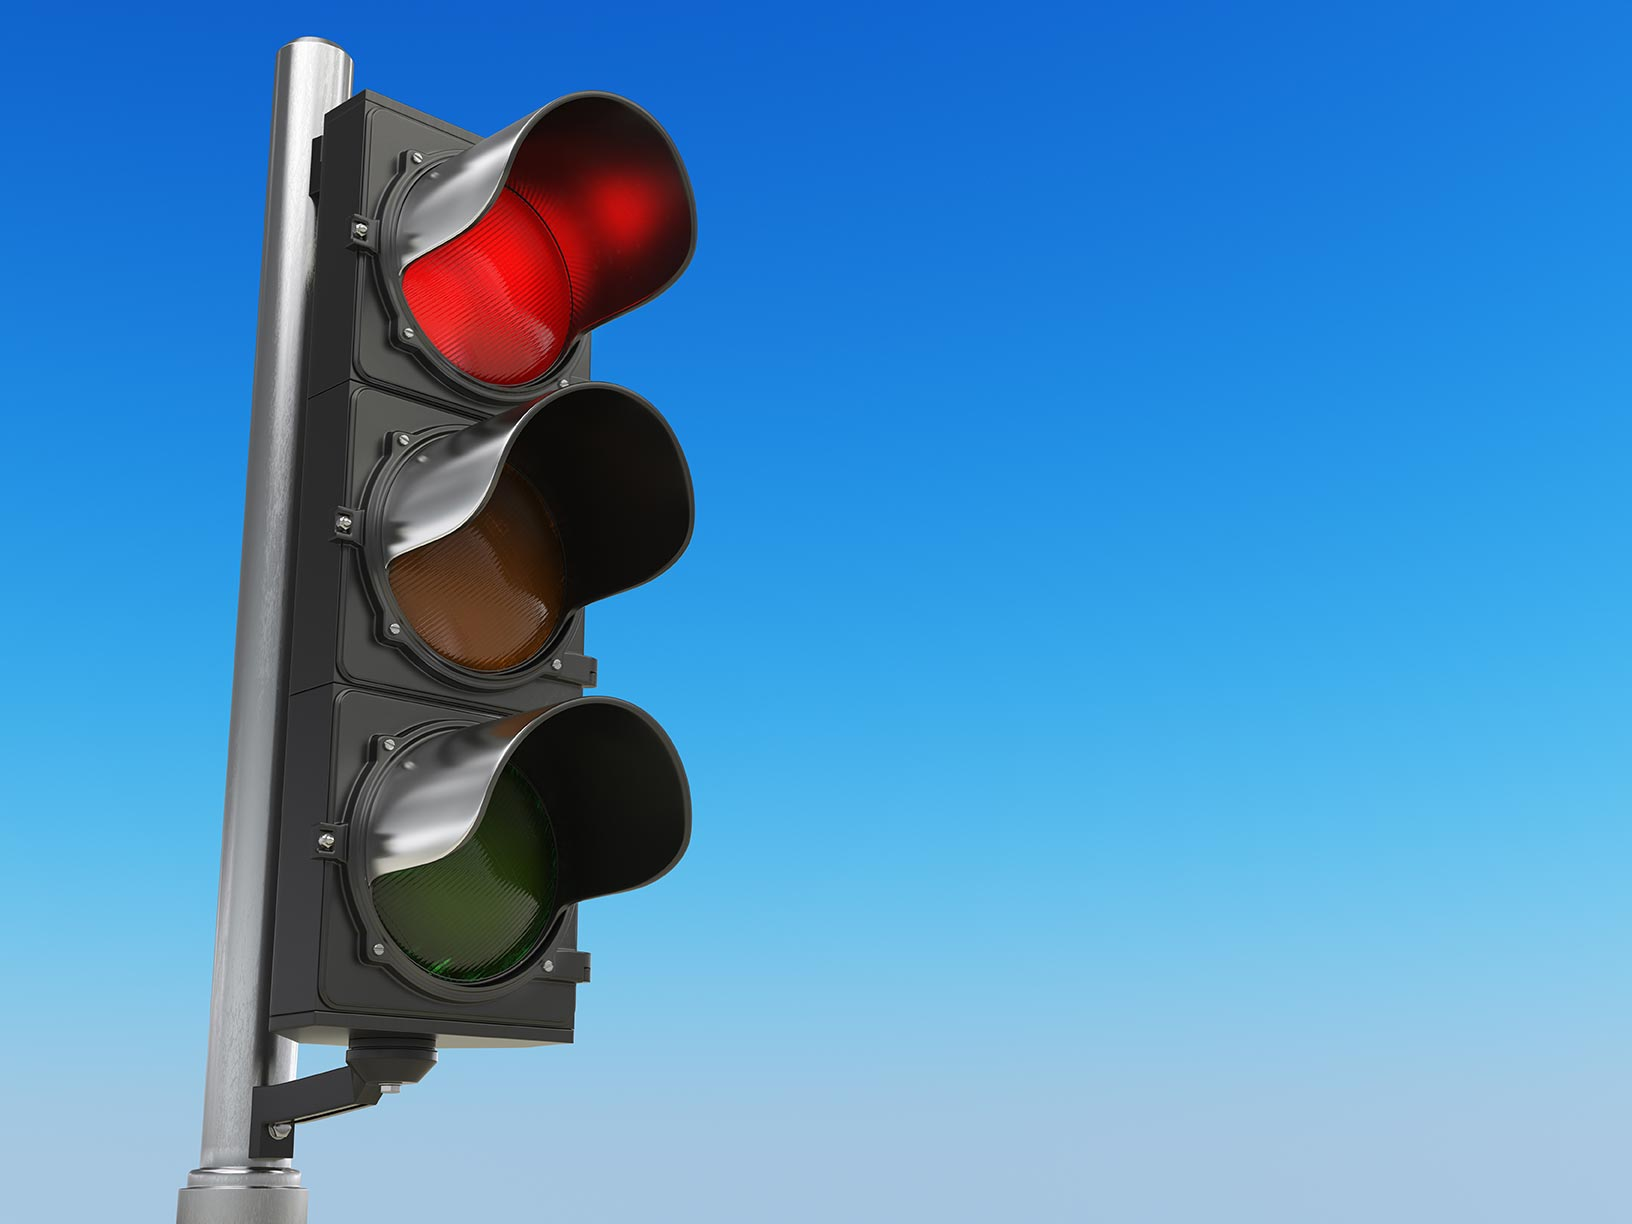 What If the Traffic Signal Won't Change? Run a Red Light?